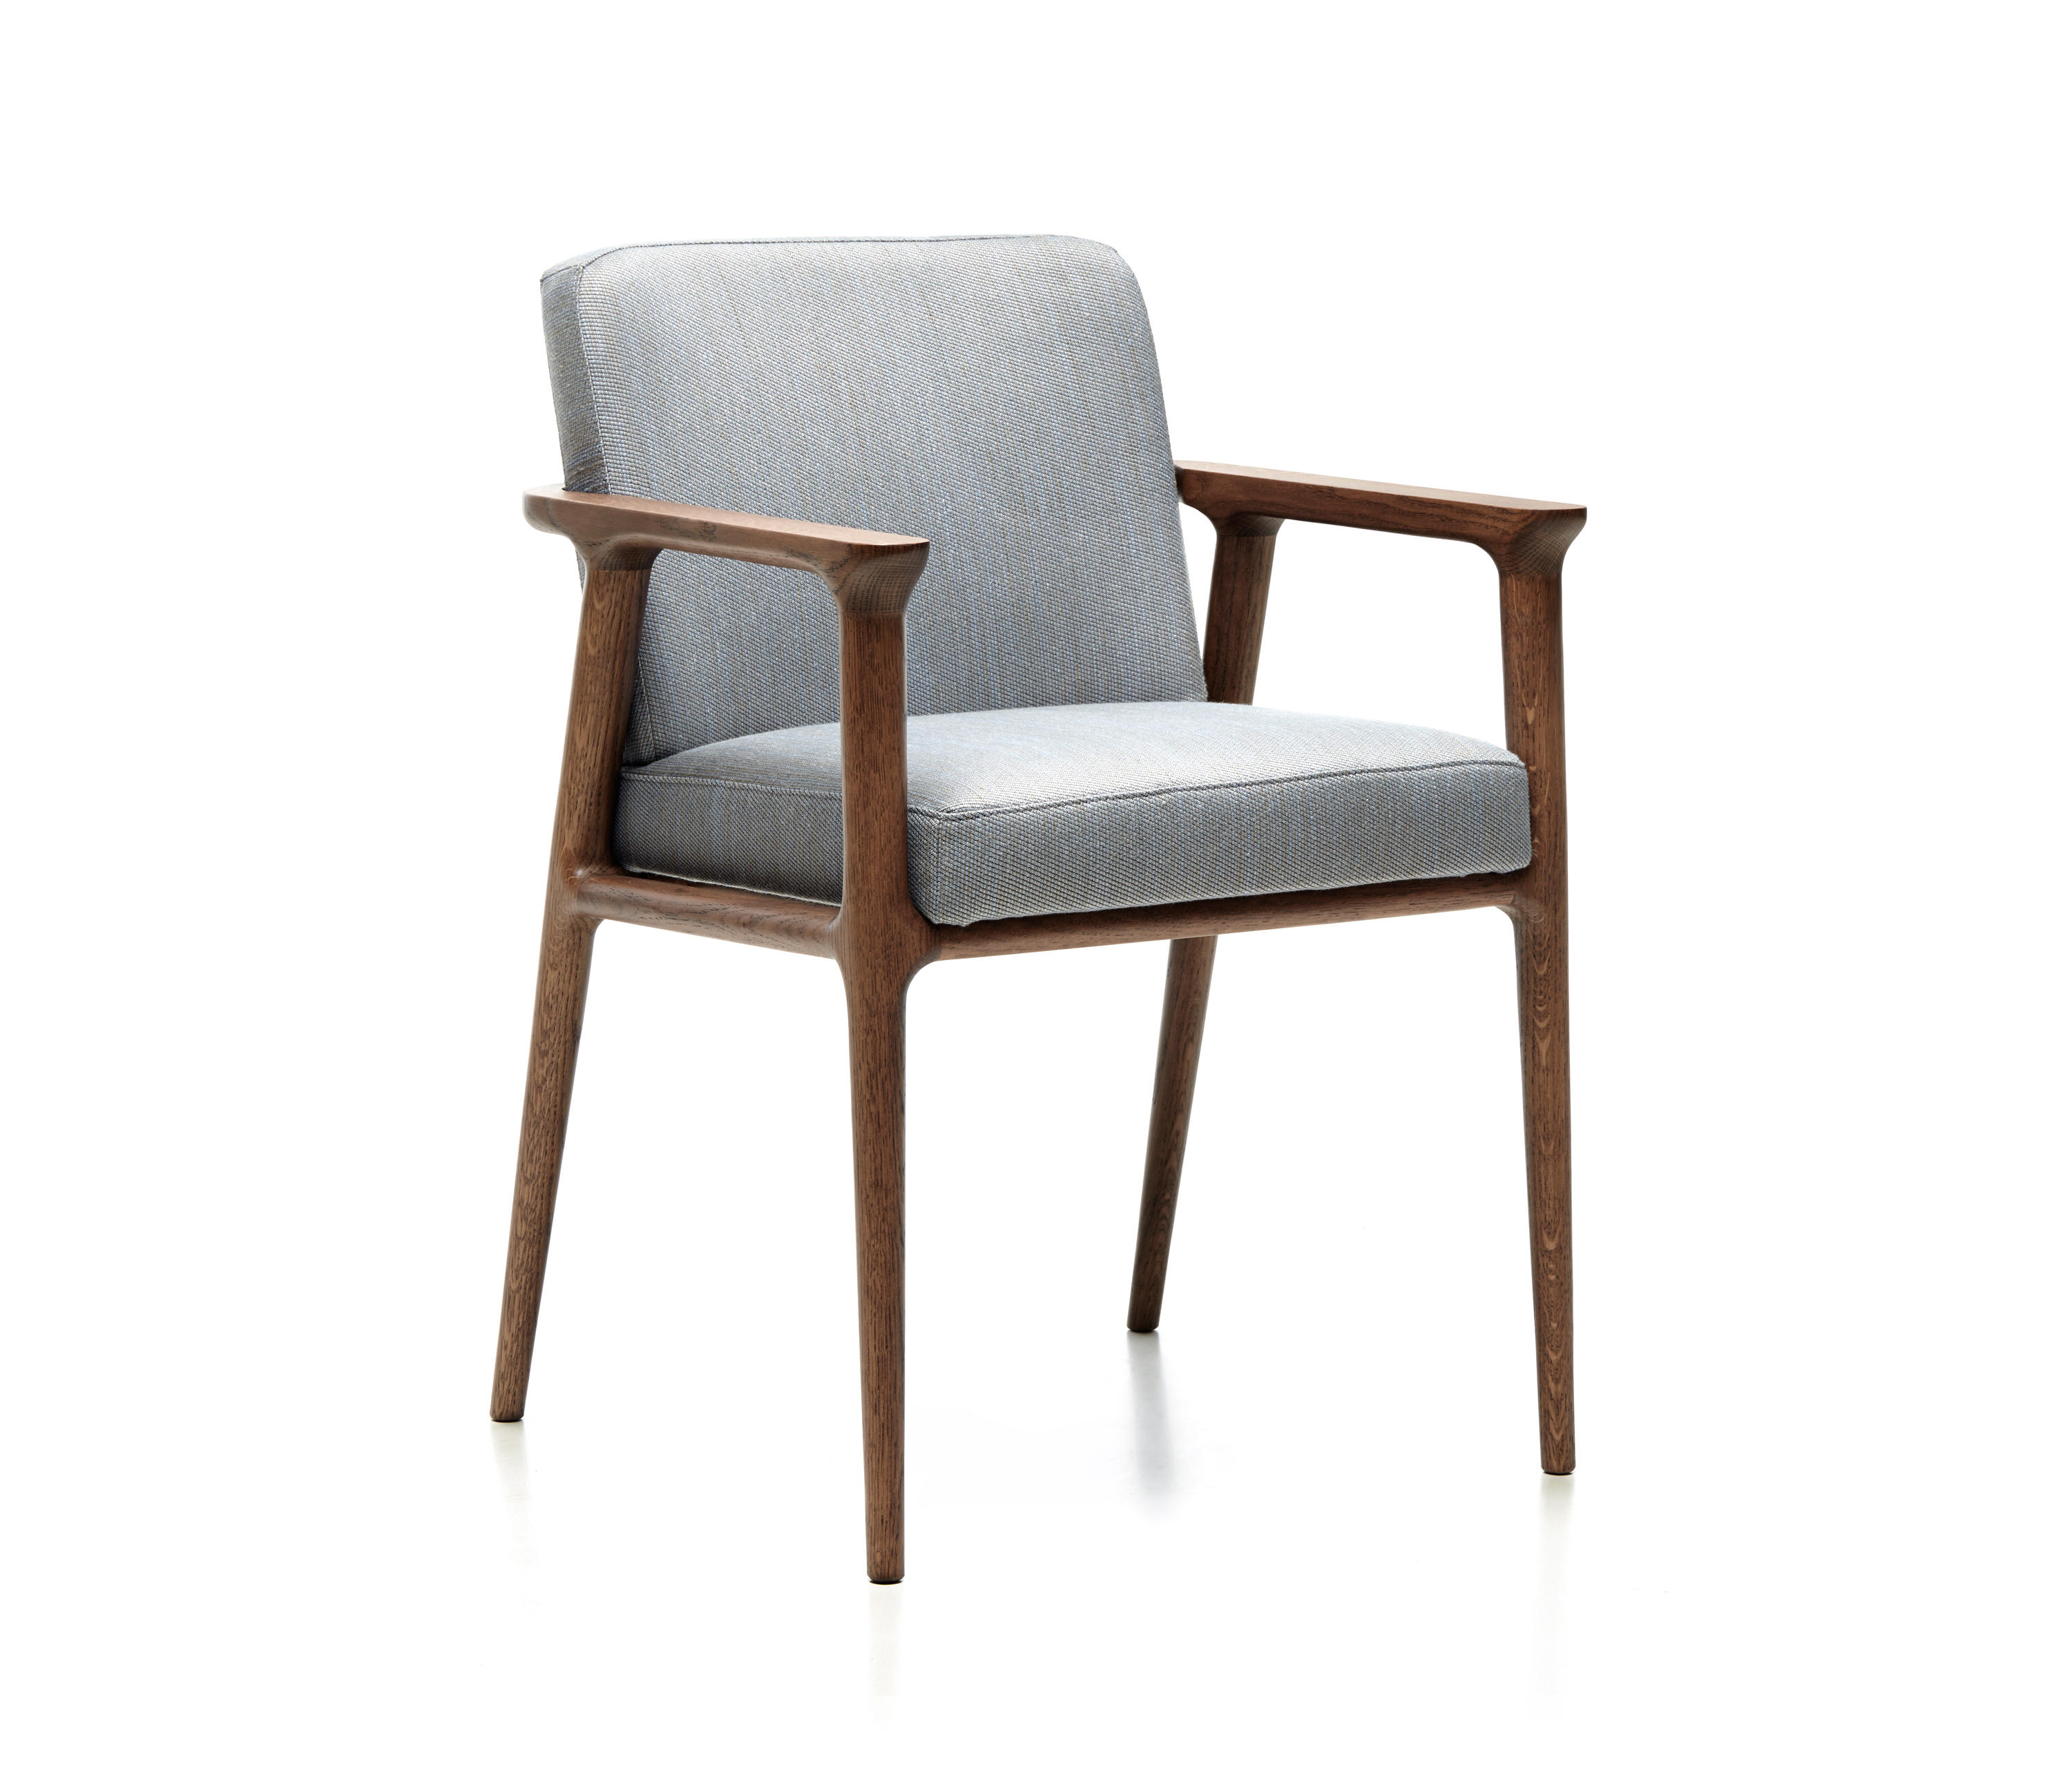 Restaurant Chairs Zio Dining Chair Chairs From Moooi Architonic